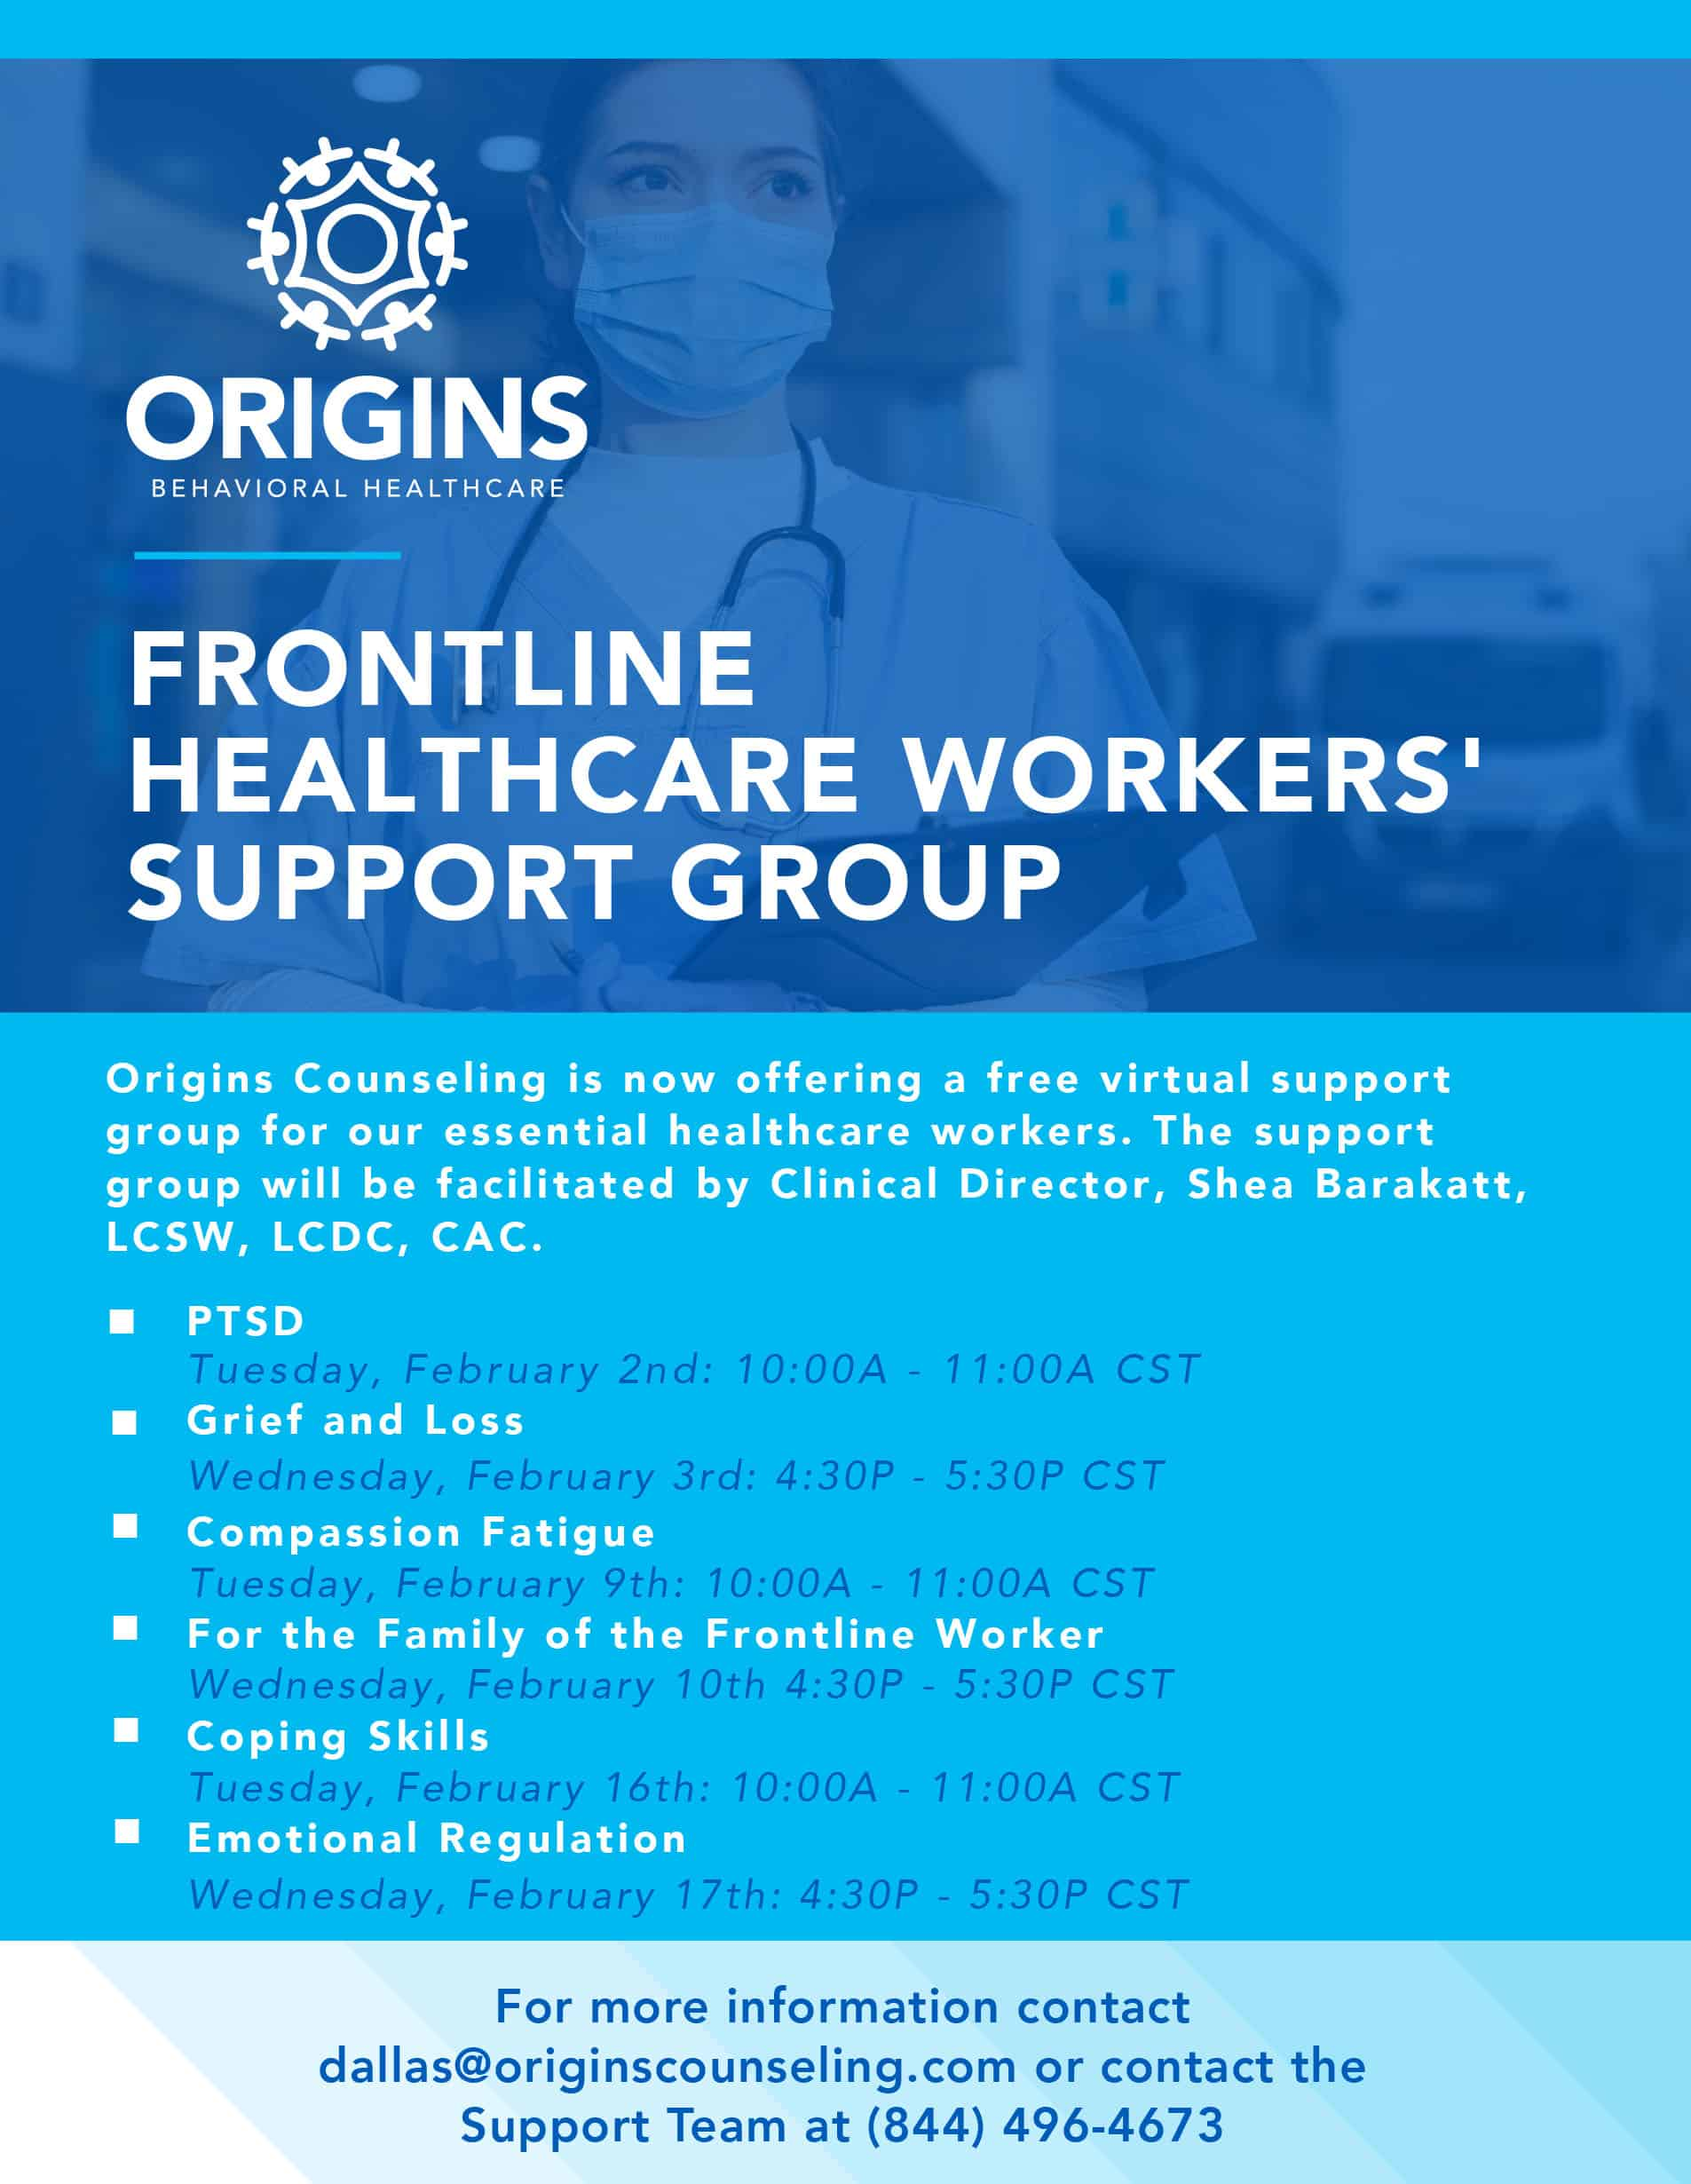 Schedule for Free Frontline Healthcare Workers Support Groups